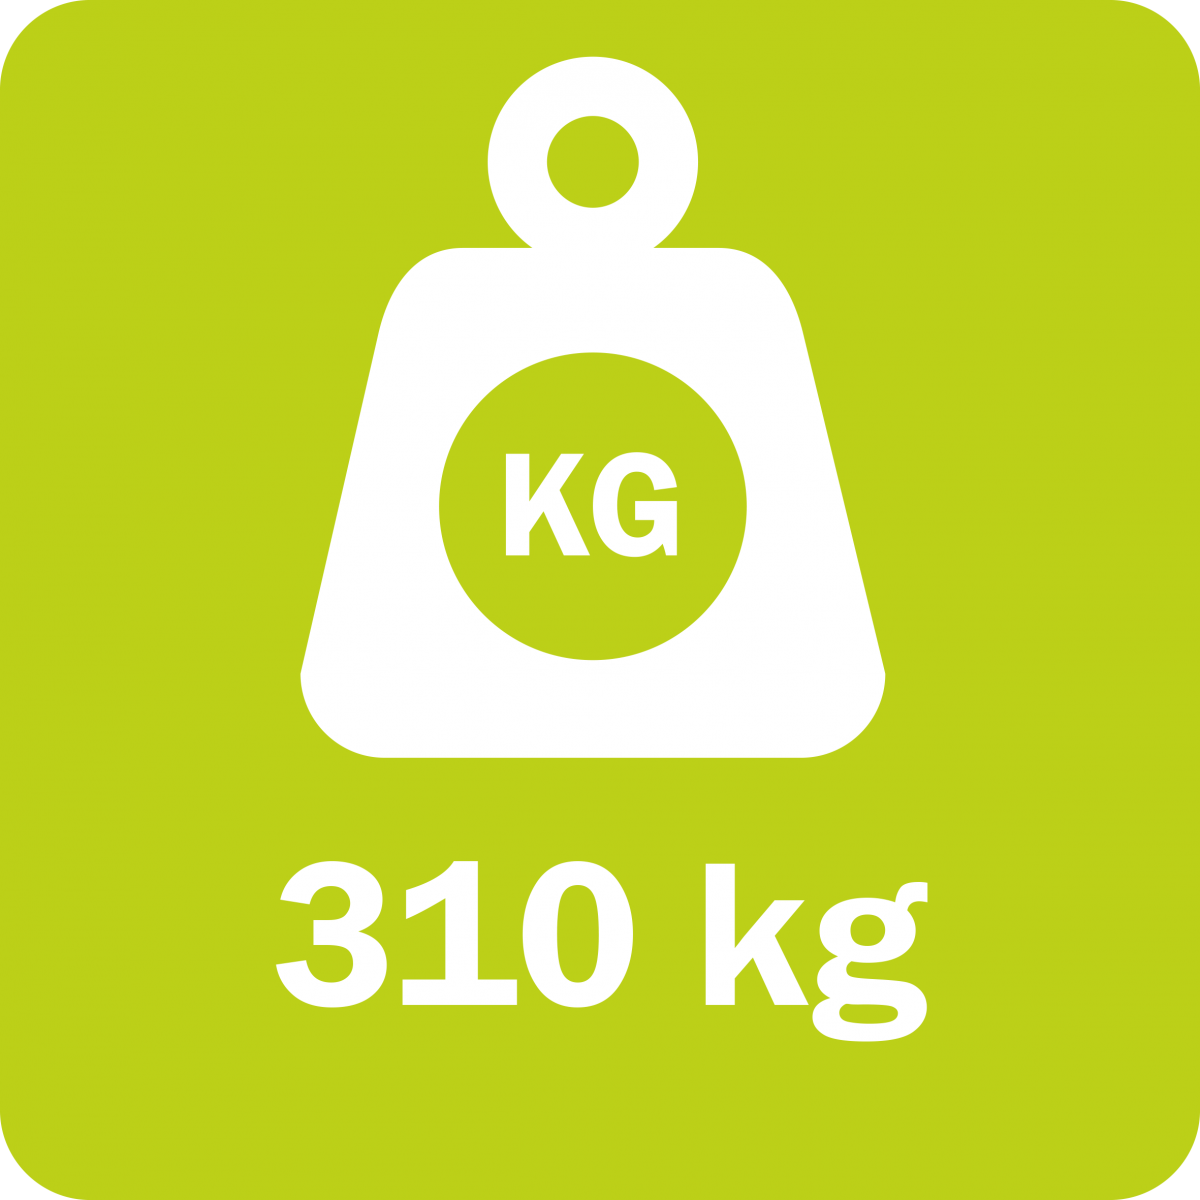 The Rotary Mulcher RM 232 weighs 250 kg (683 lb)